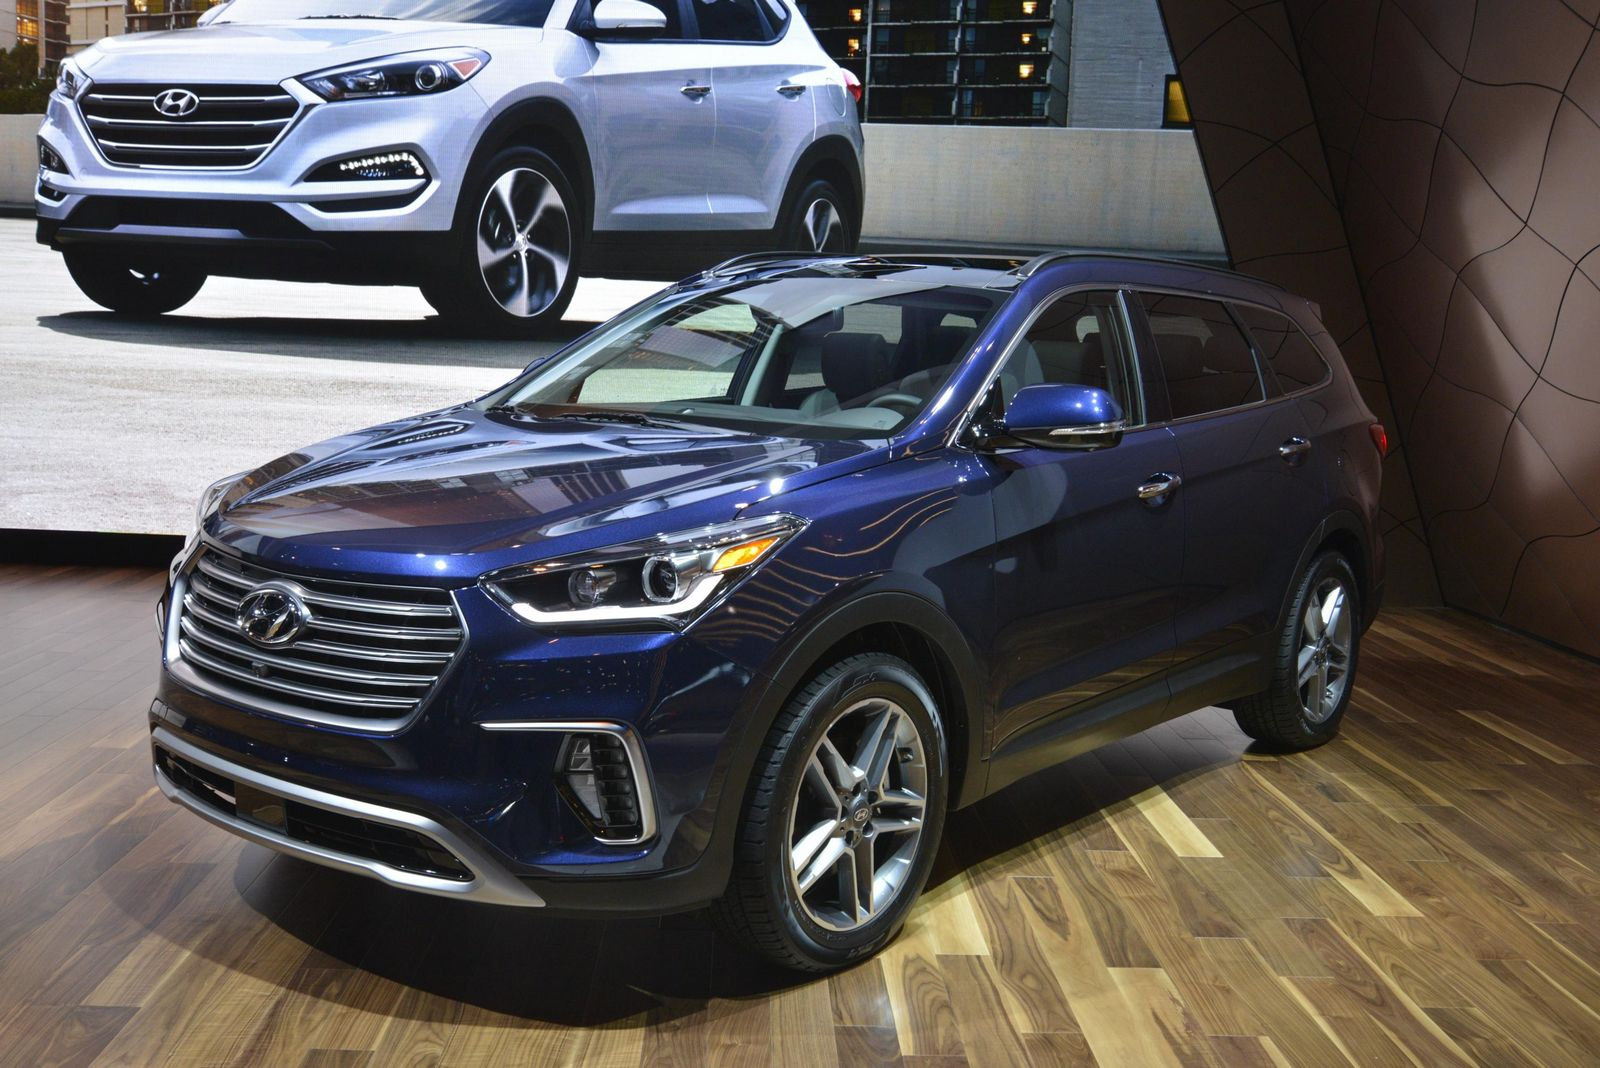 facelifted hyundai santa fe and sante fe sport pose for chicago 39 s cameras carscoops. Black Bedroom Furniture Sets. Home Design Ideas